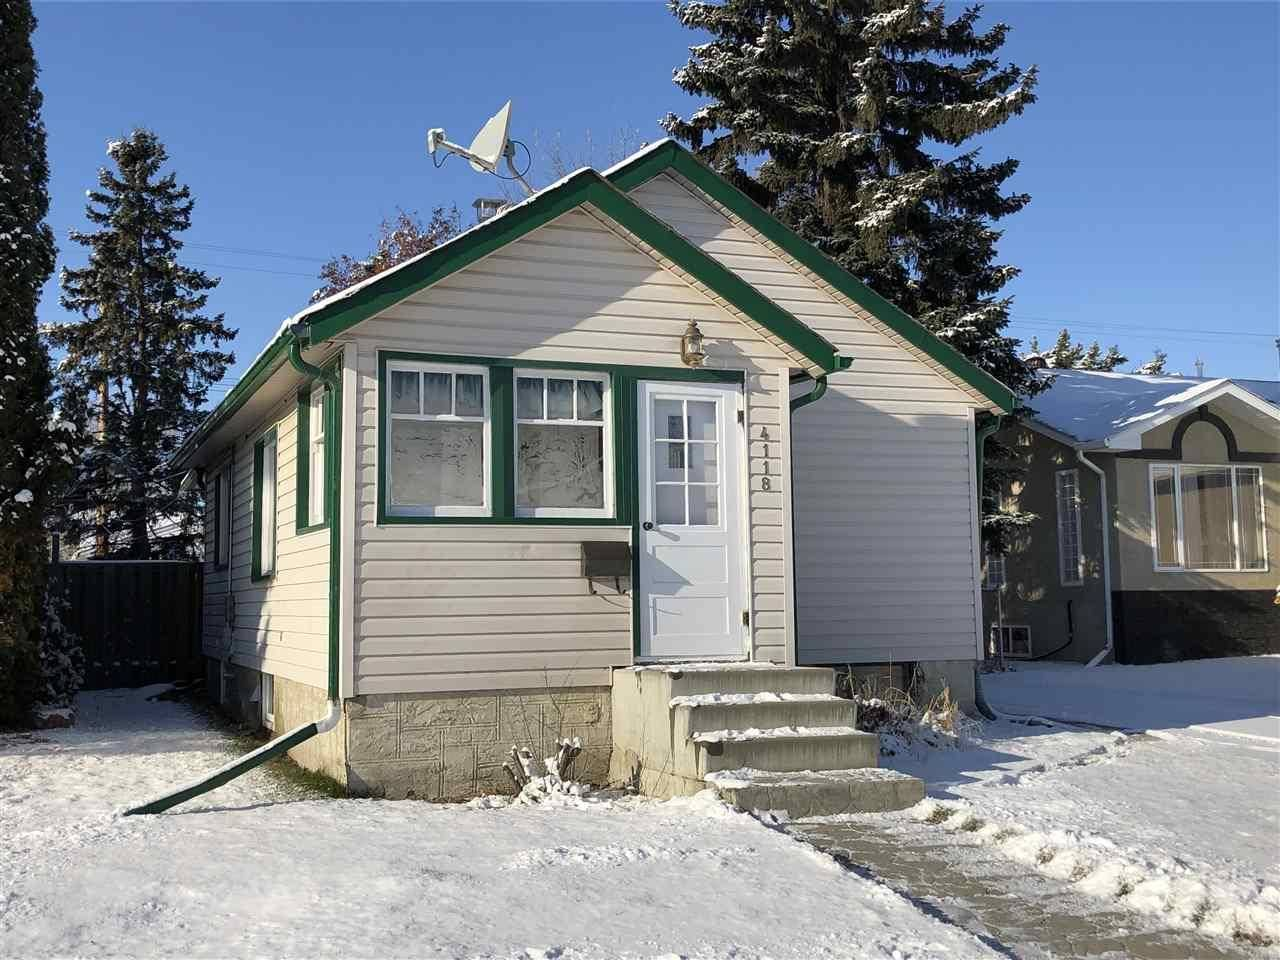 House for sale at 4118 53 St Wetaskiwin Alberta - MLS: E4175535